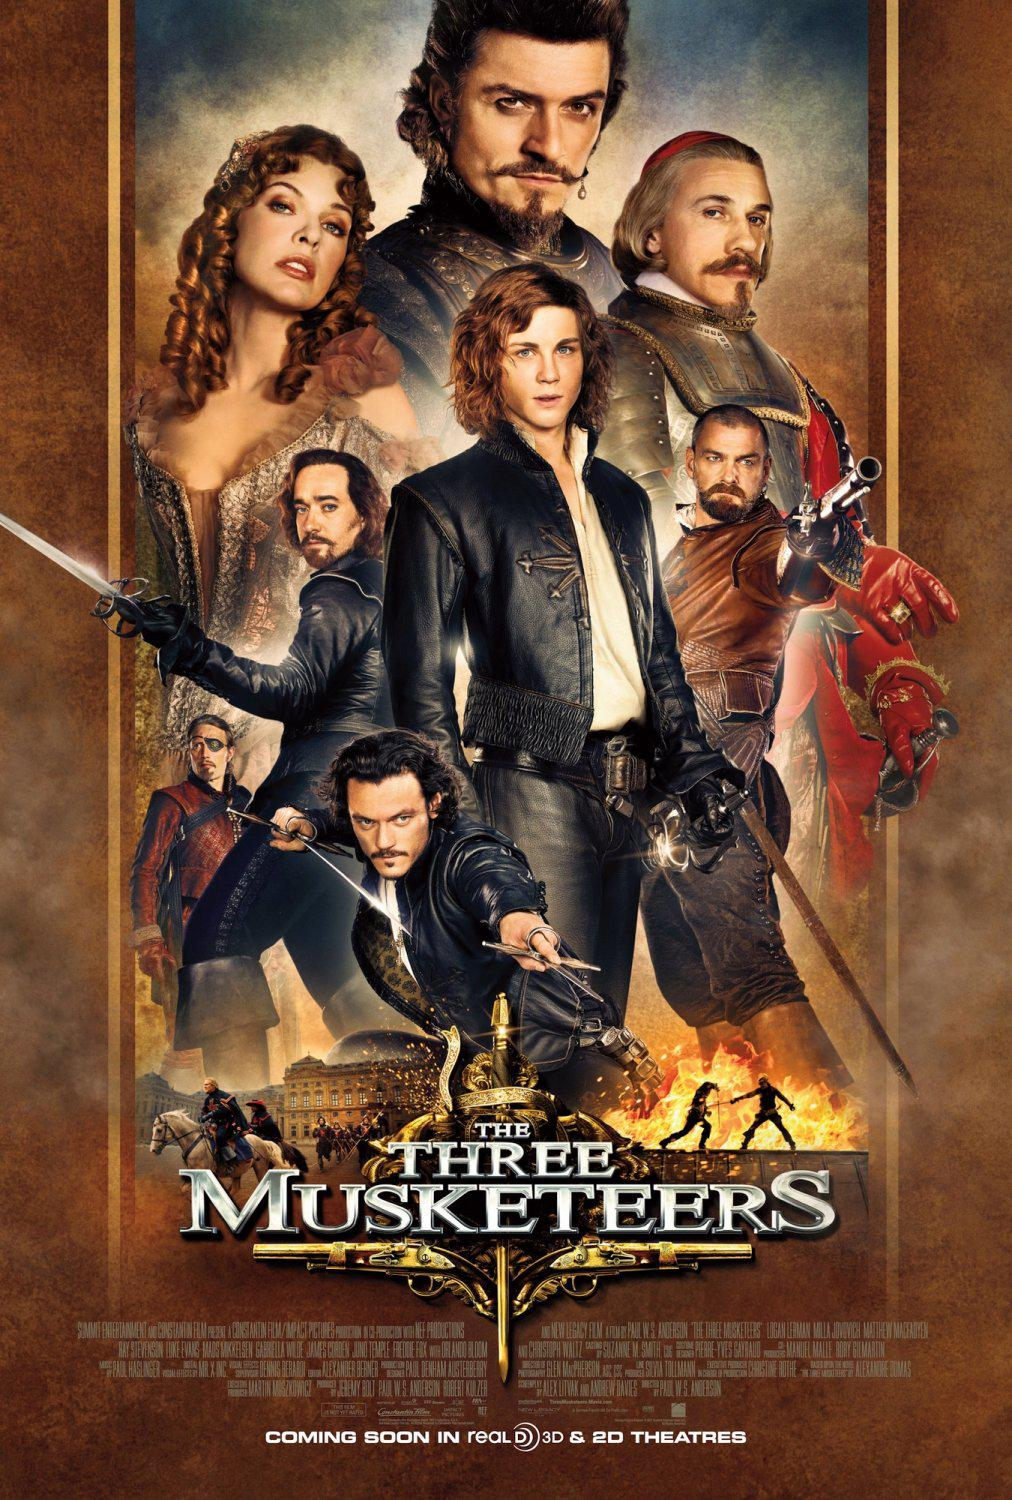 Tre Moschettieri - Three Musketeers - Los Tres Mosqueteros - Trois Mousquetaires - Drei Musketiere - 三銃士 - Три мушкетера - poster